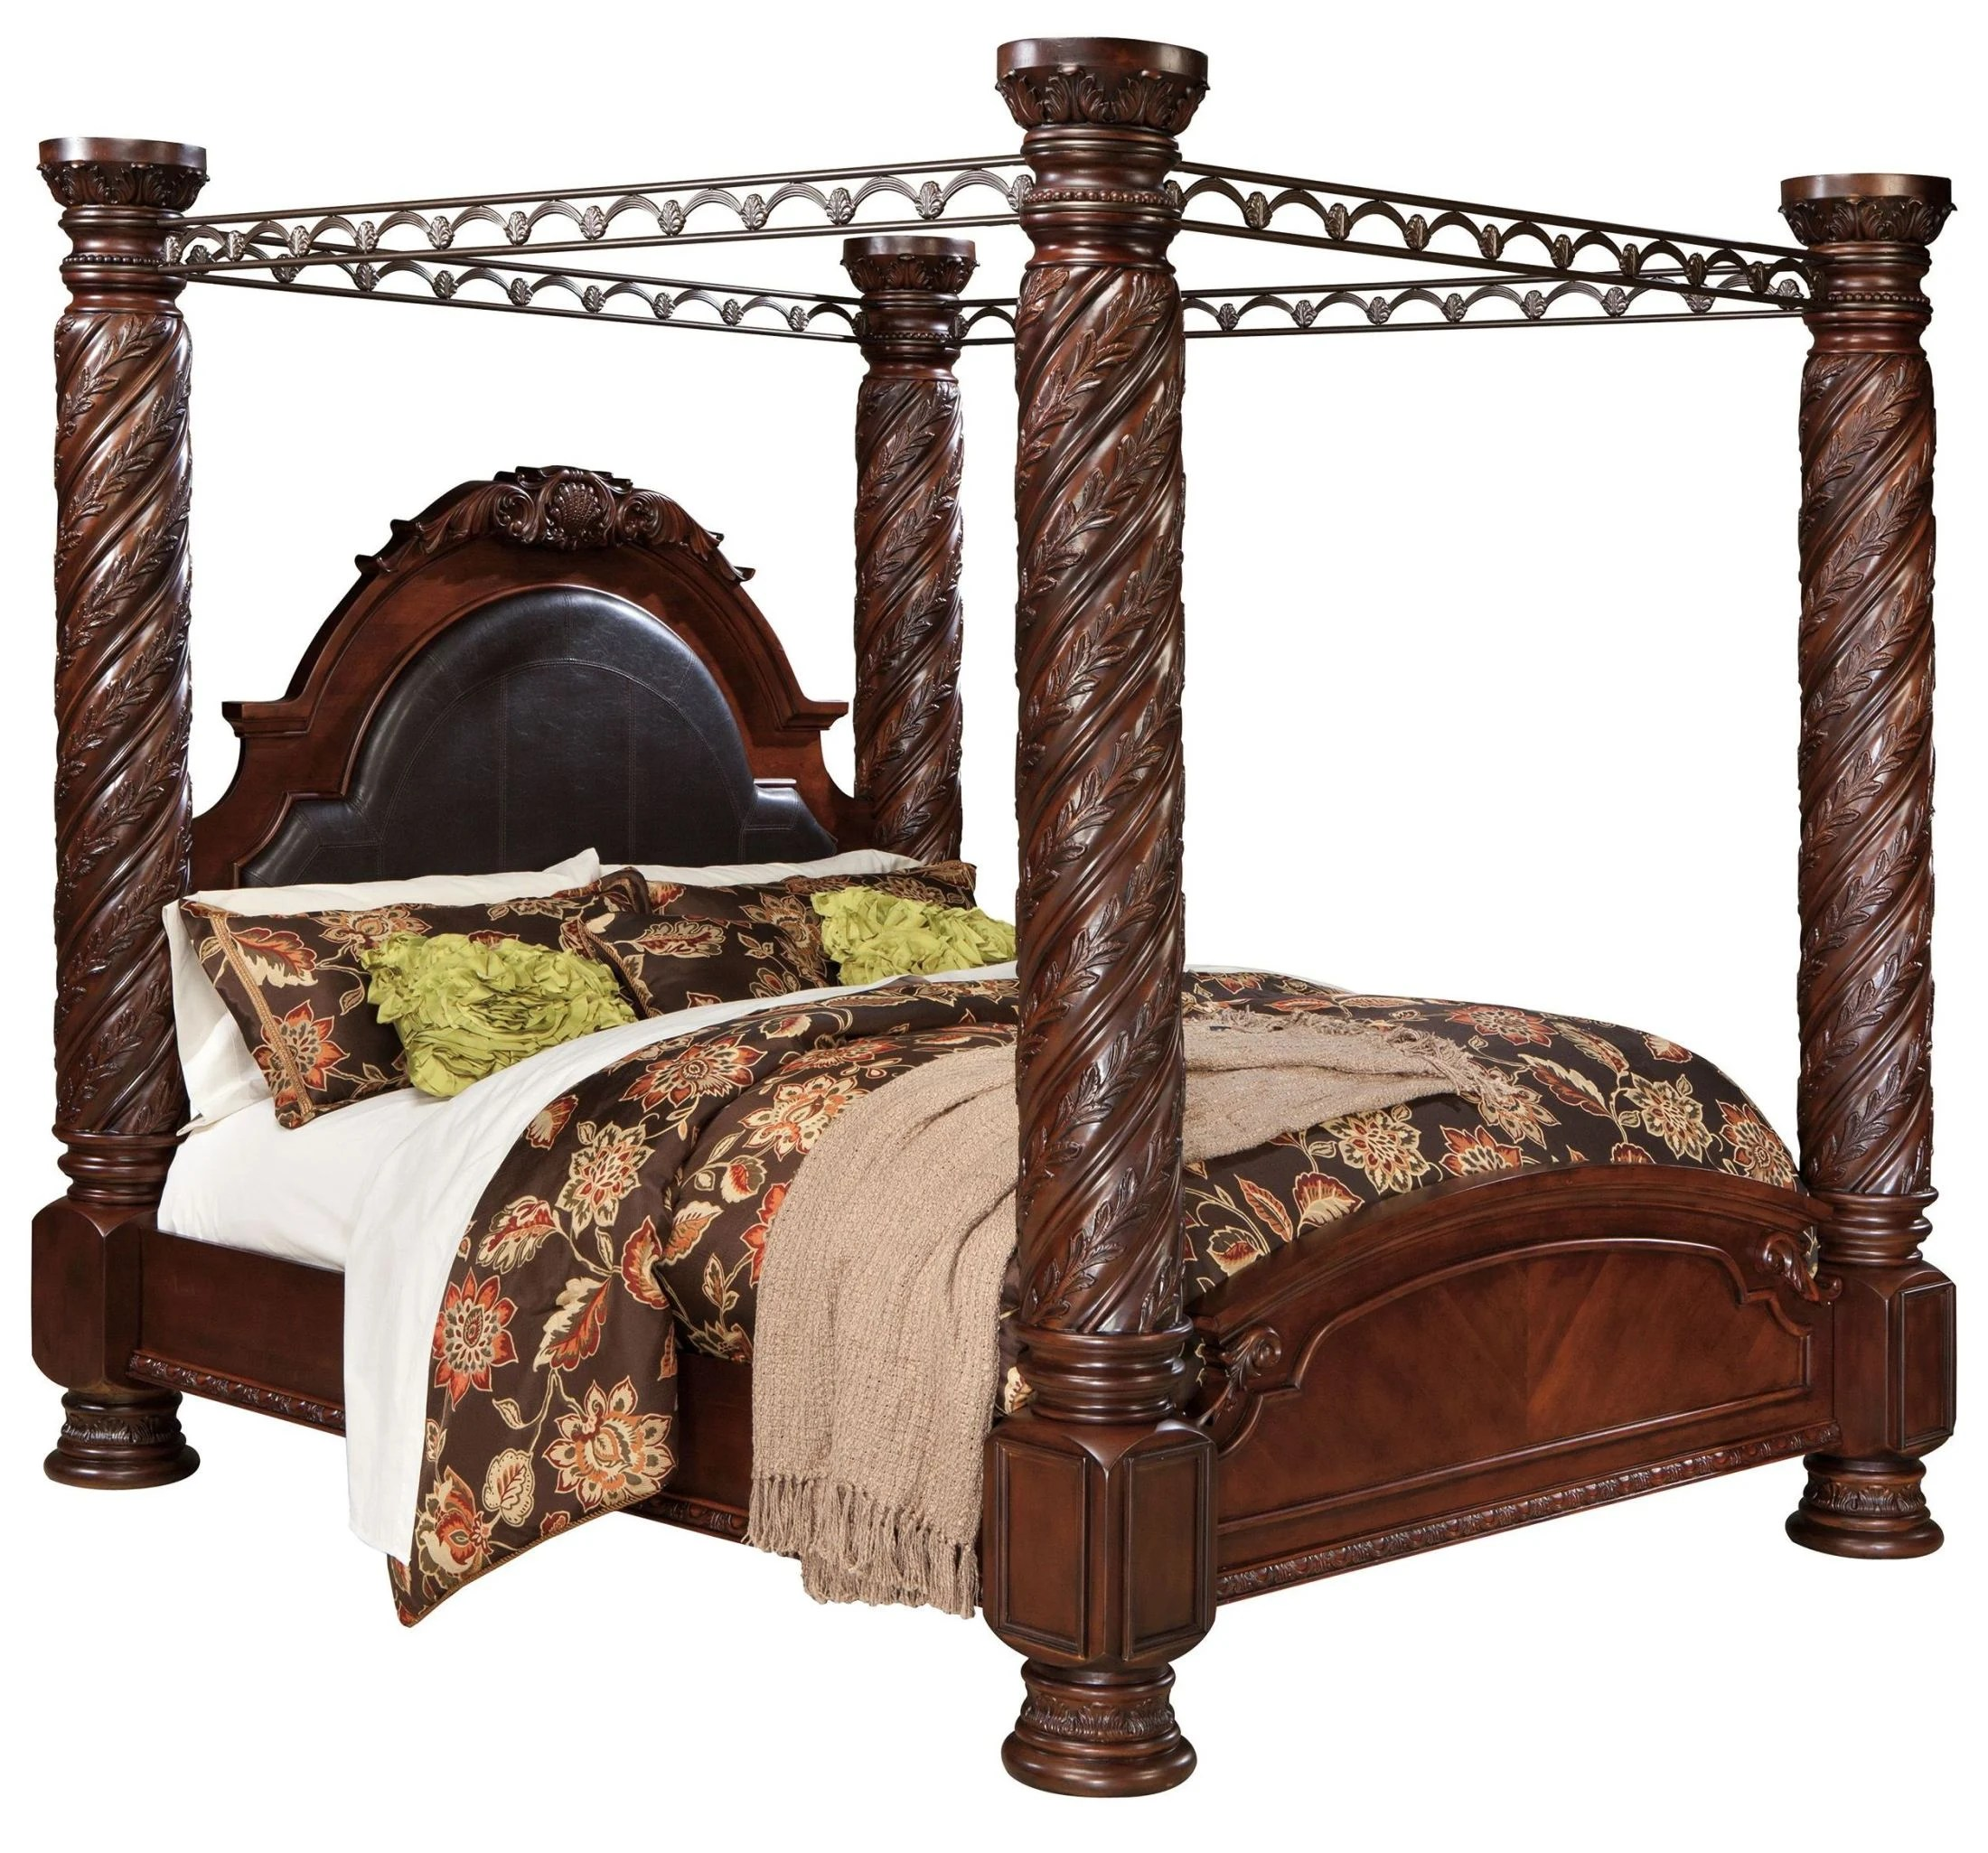 4 Poster Canopy King Bed North Shore King Poster Bed With Canopy